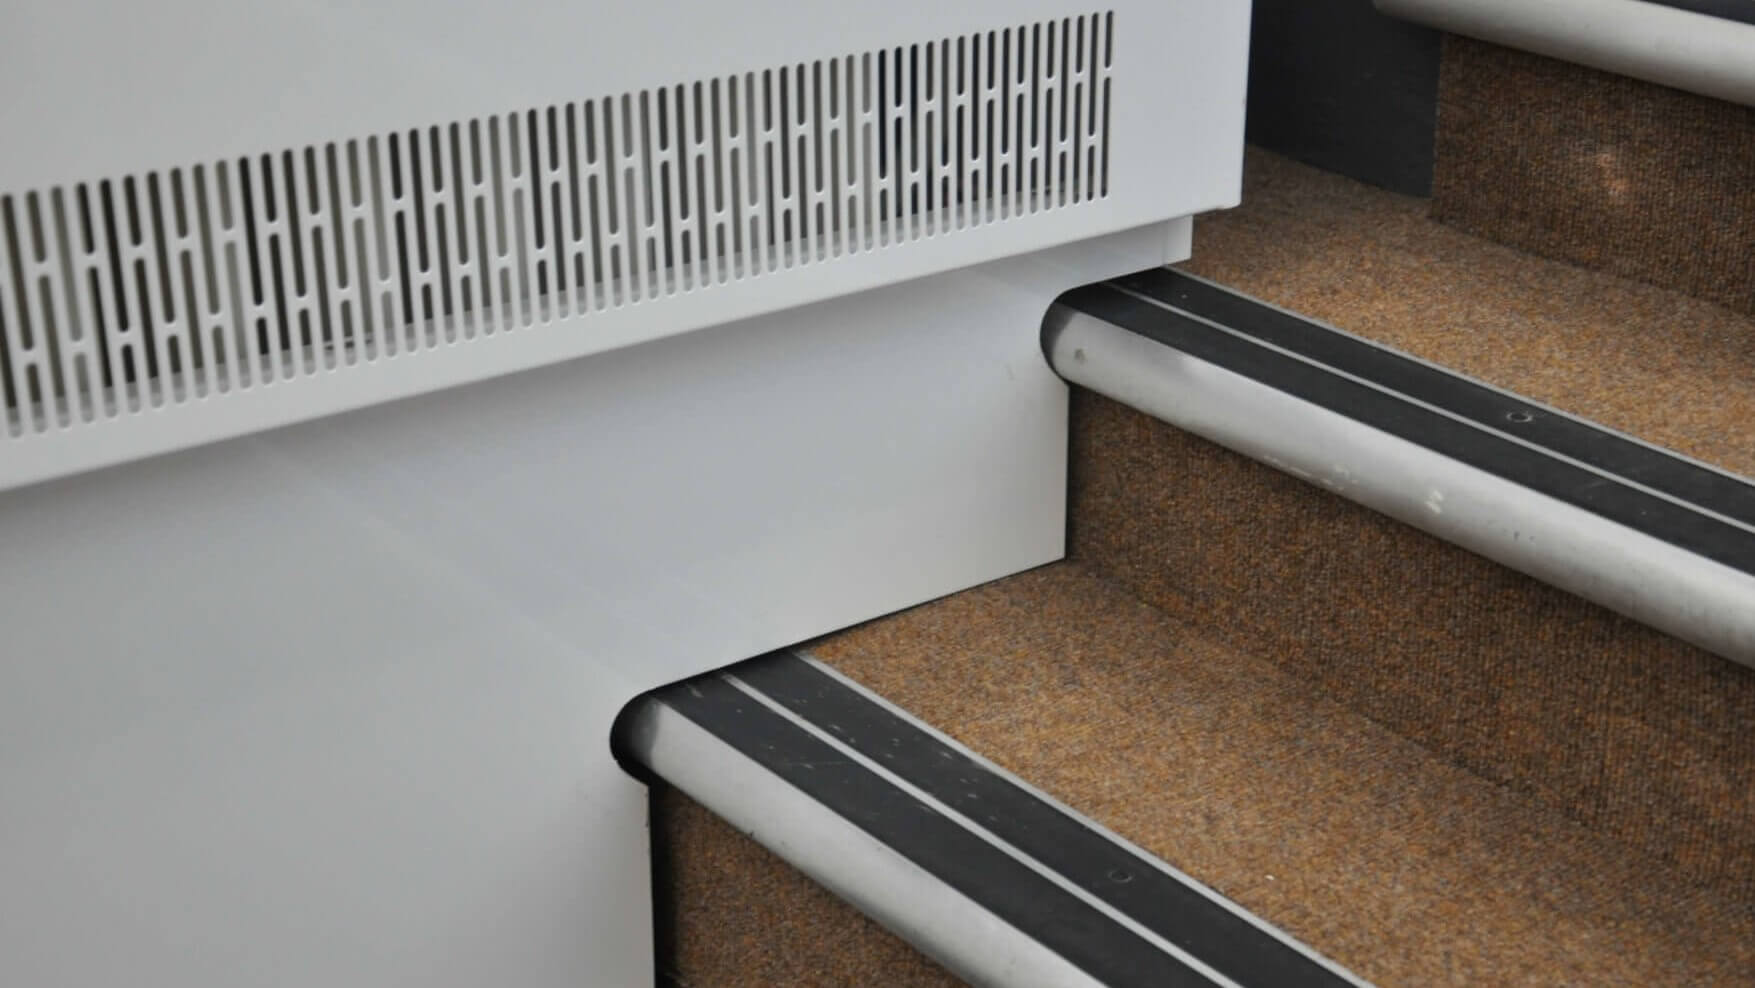 Factory Programmed Cutouts Makes Installation Quicker For Metal Radiator Covers